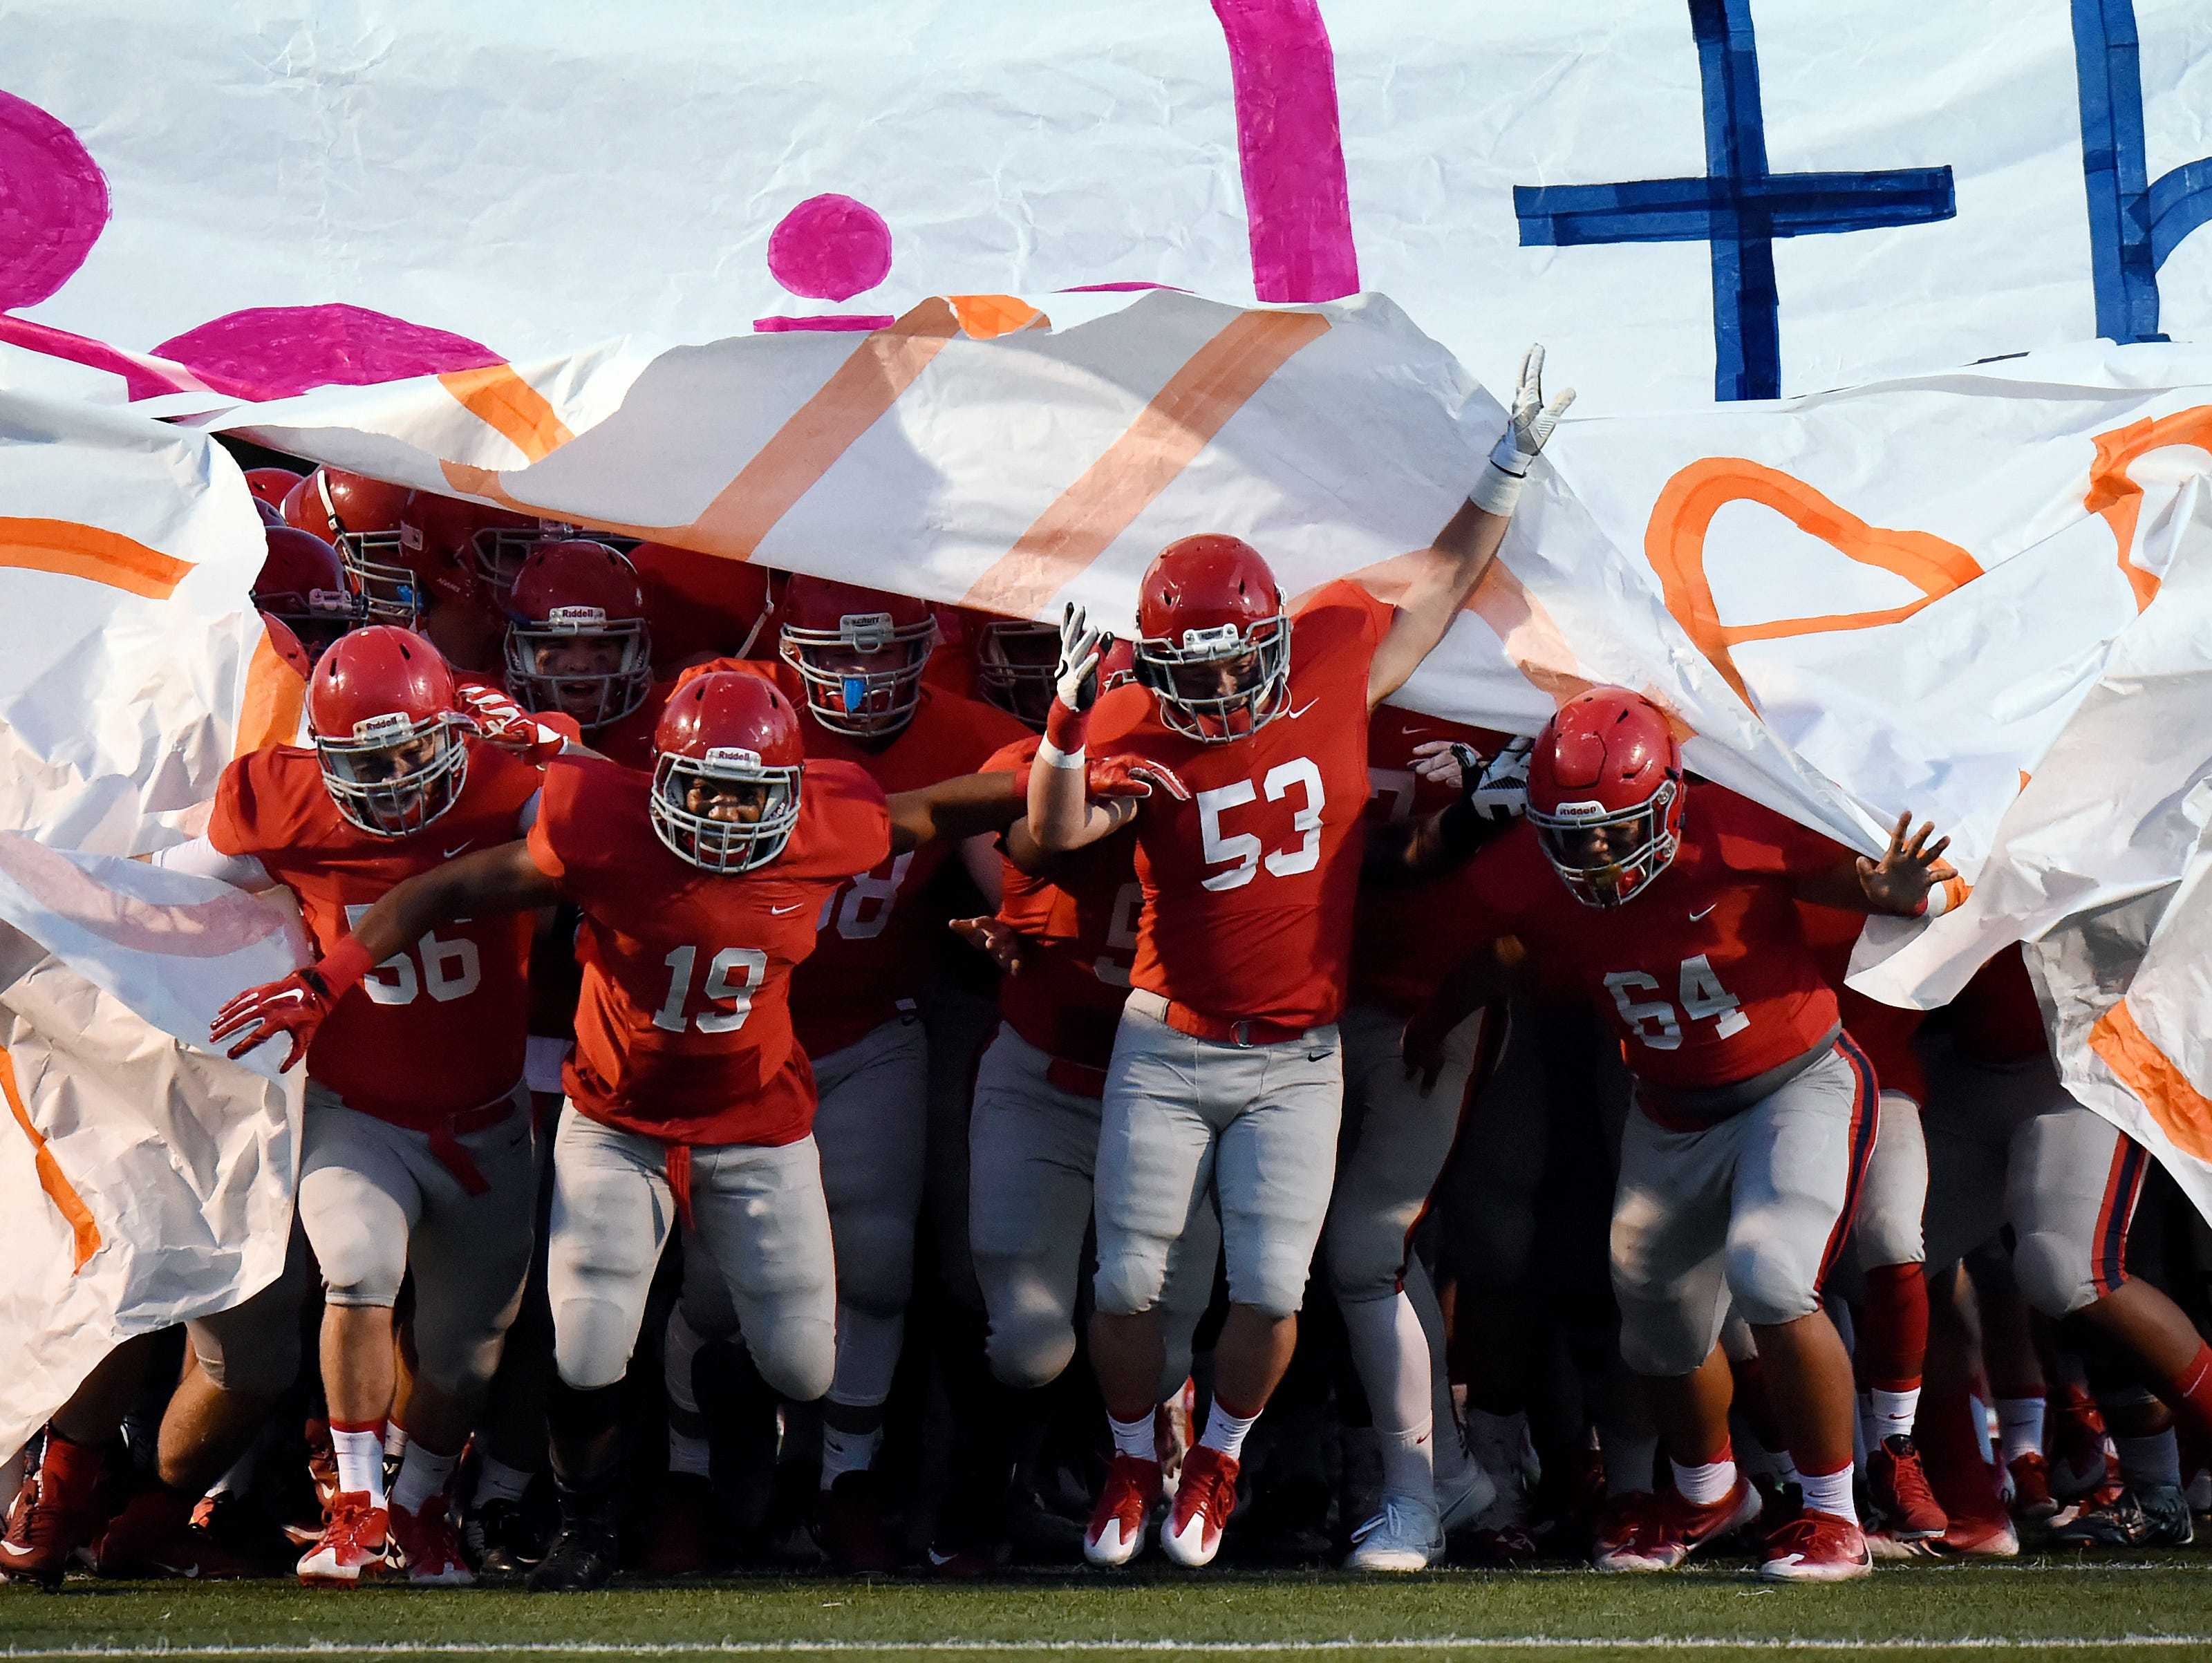 Brentwood Academy football players run onto the field before an high school football game against Baylor on Friday, Sept. 16, 2016, in Brentwood, Tenn.